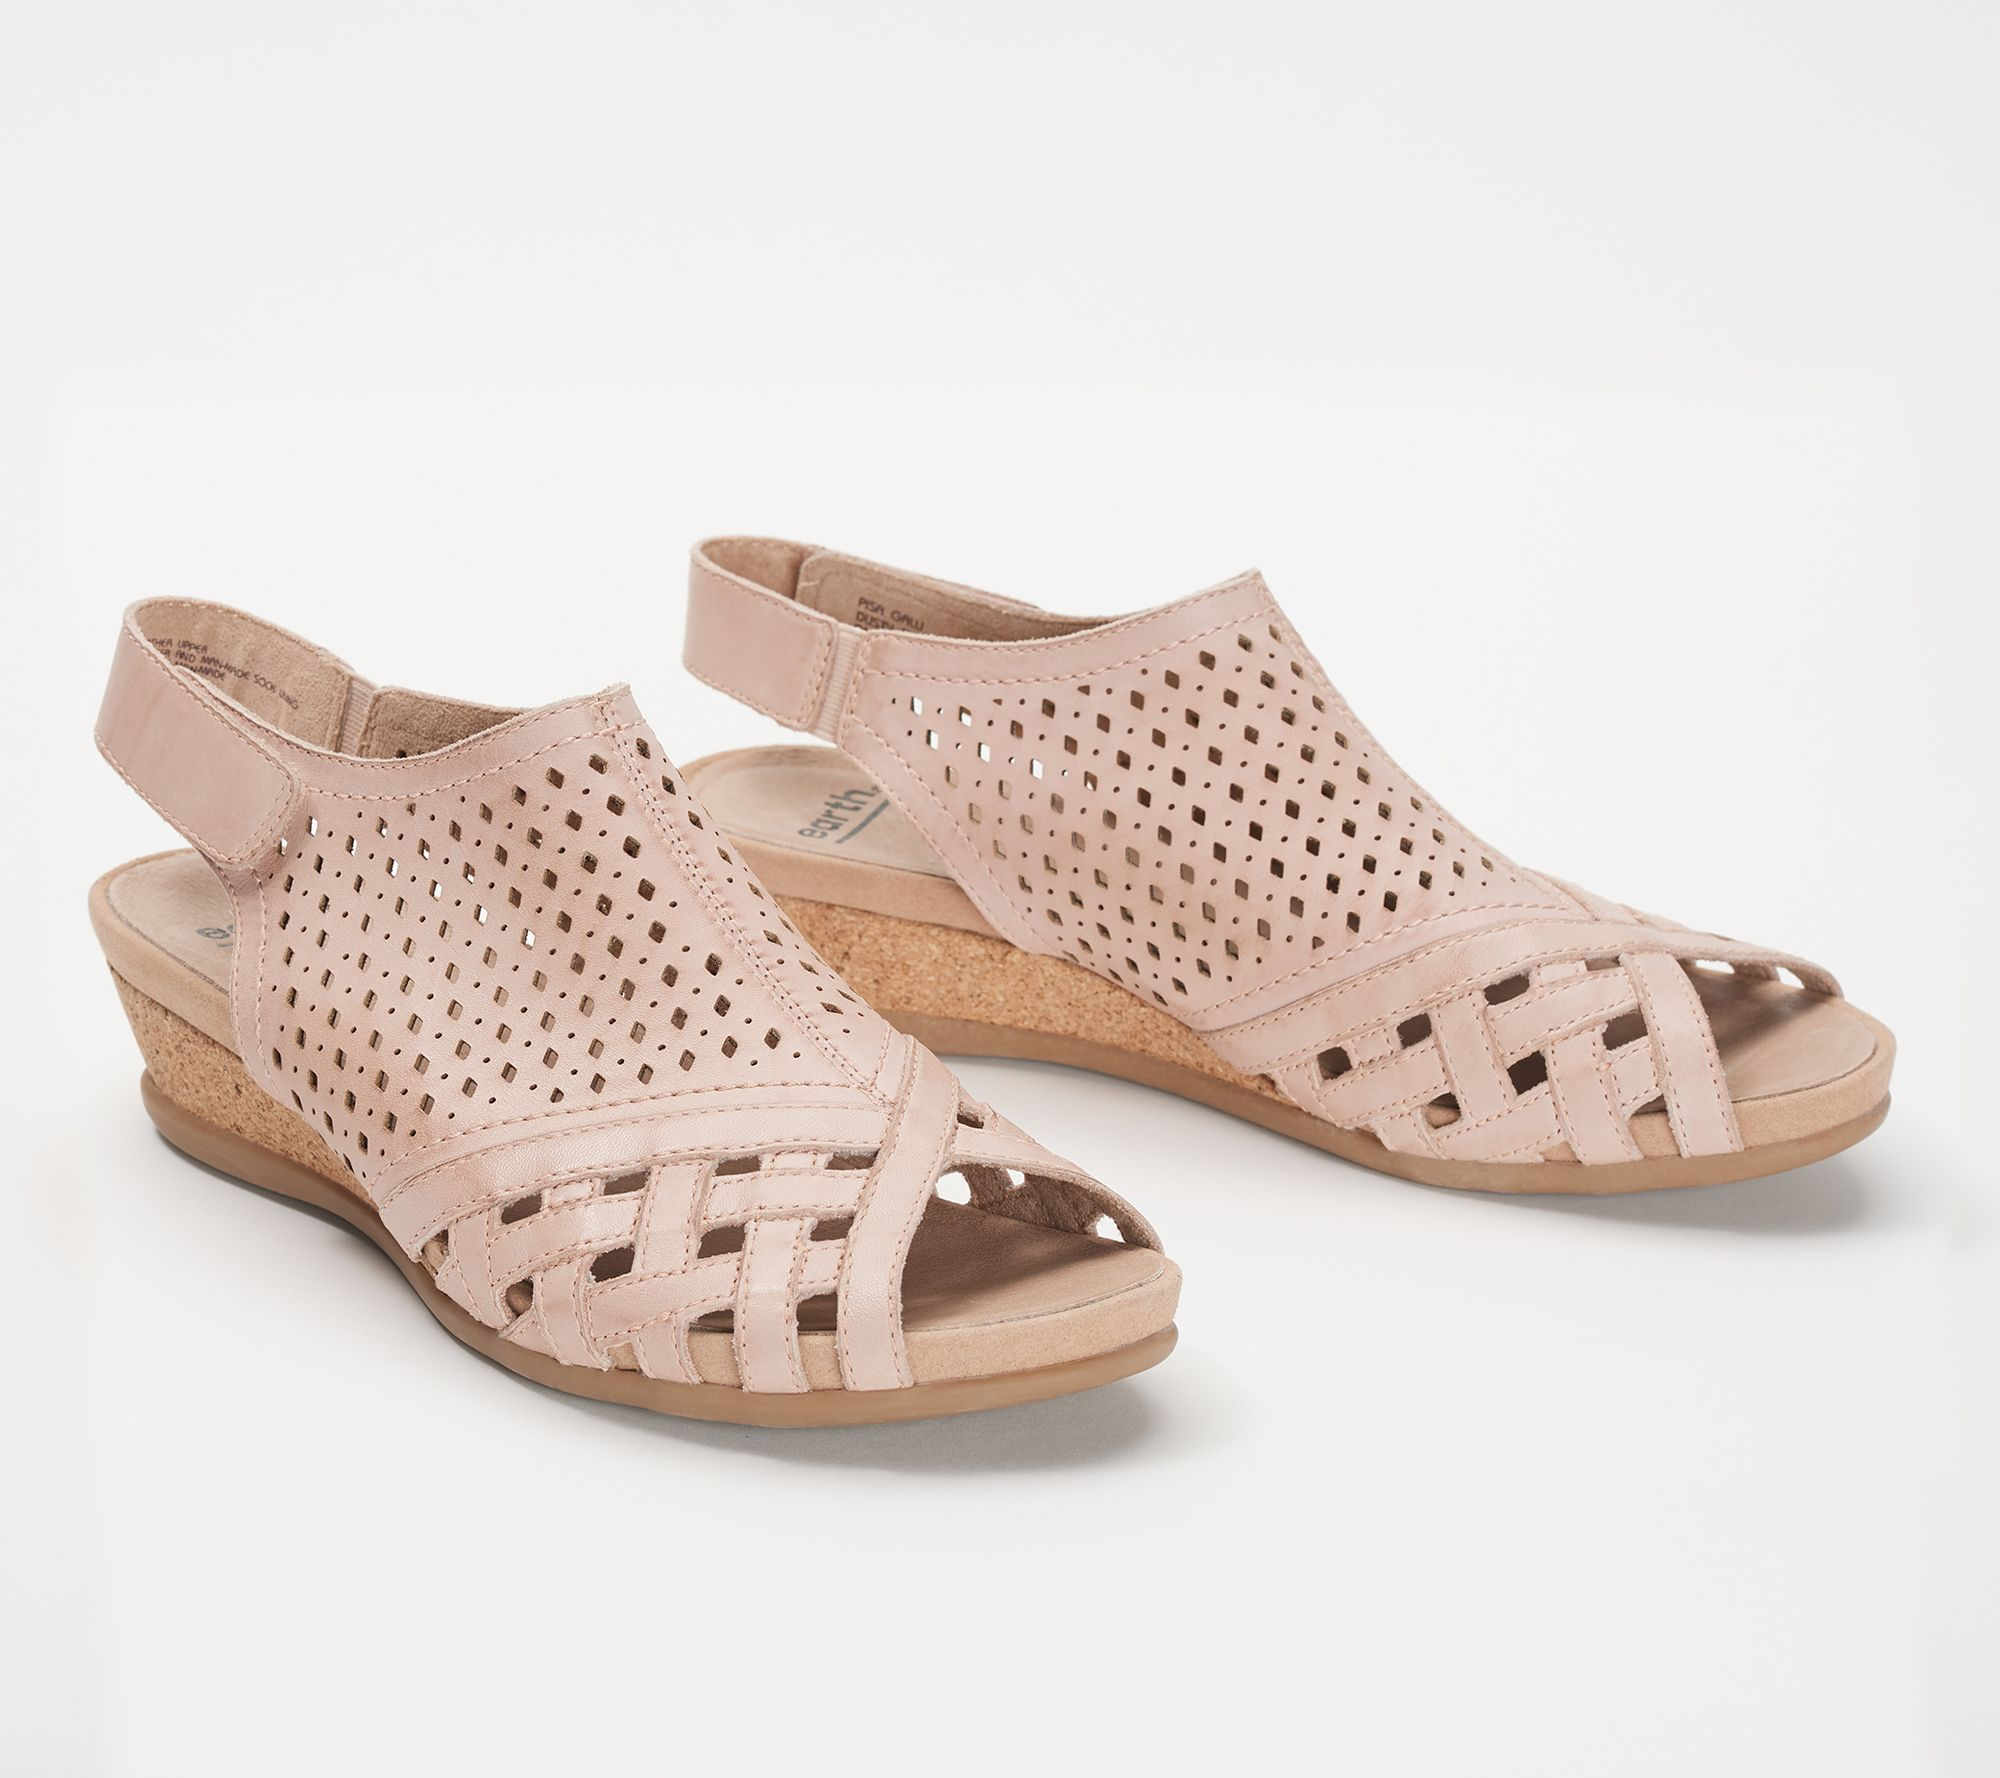 50be57200f81 Earth Leather Perforated Wedge Sandals- Pisa Galli - Page 1 — QVC.com